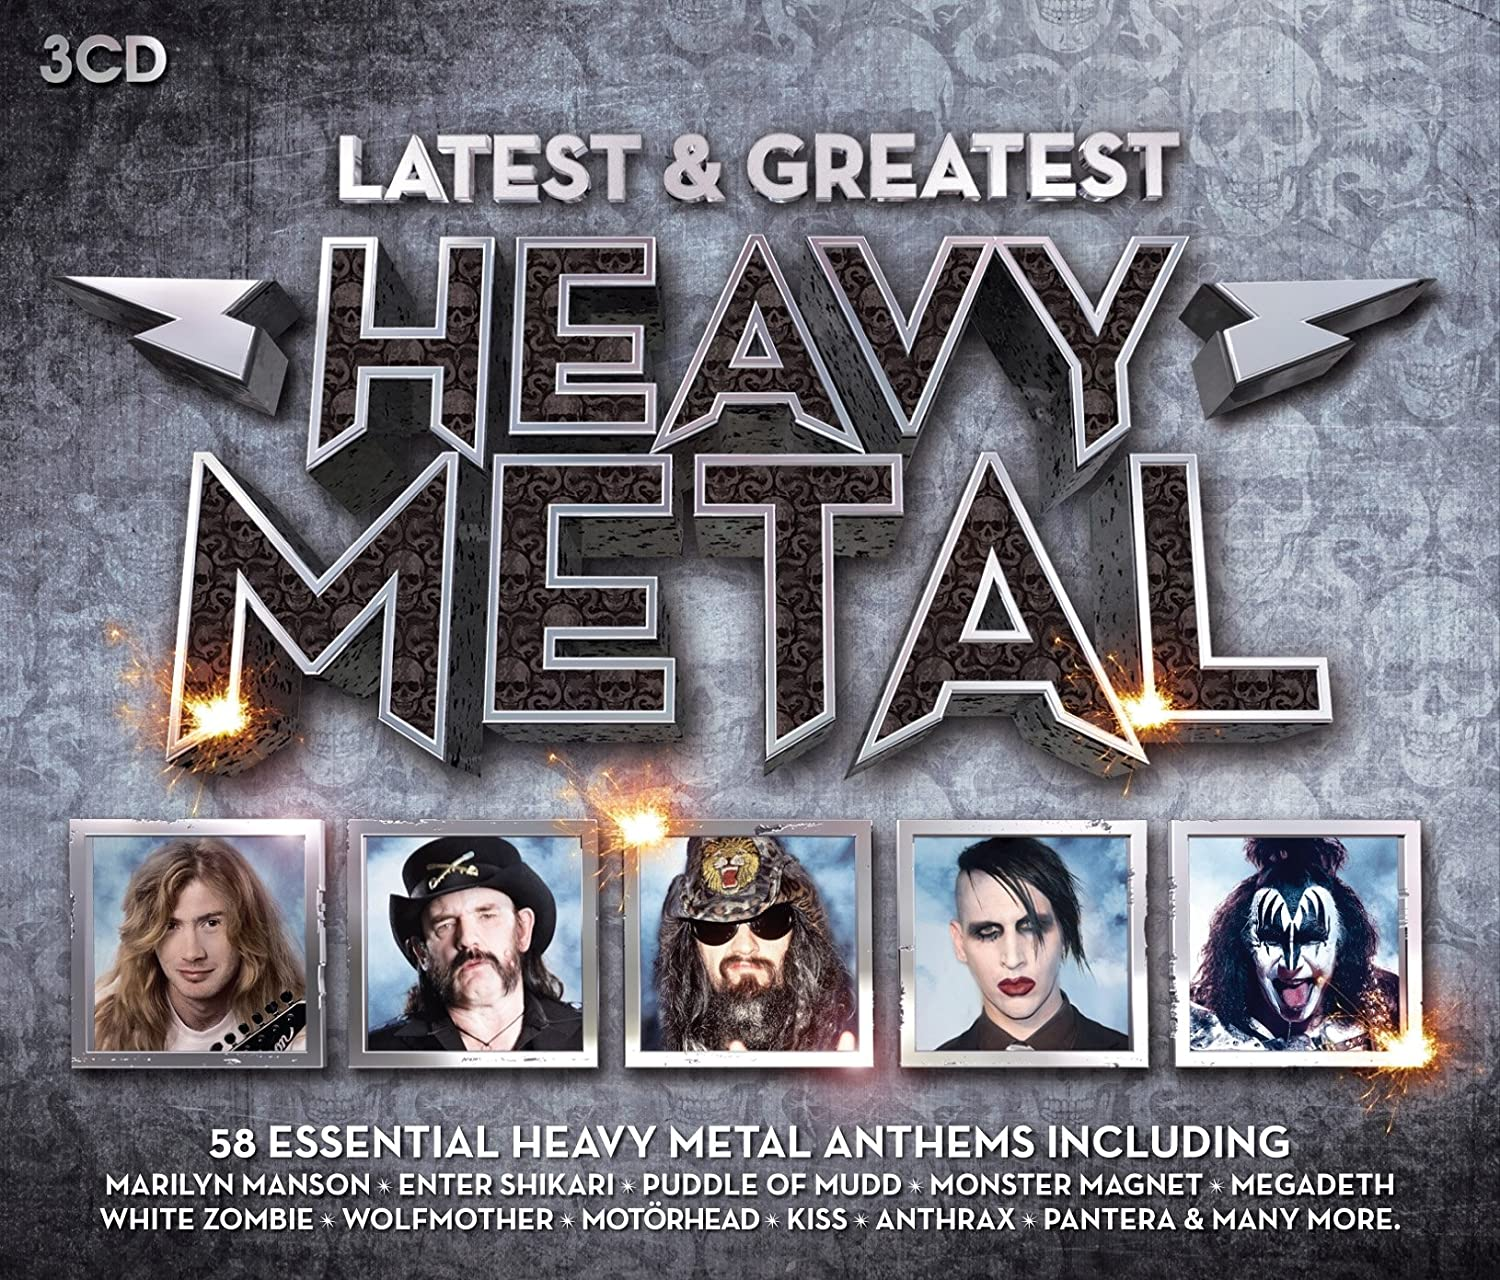 Latest & Greatest Heavy Metal: Various: Amazon.es: Música